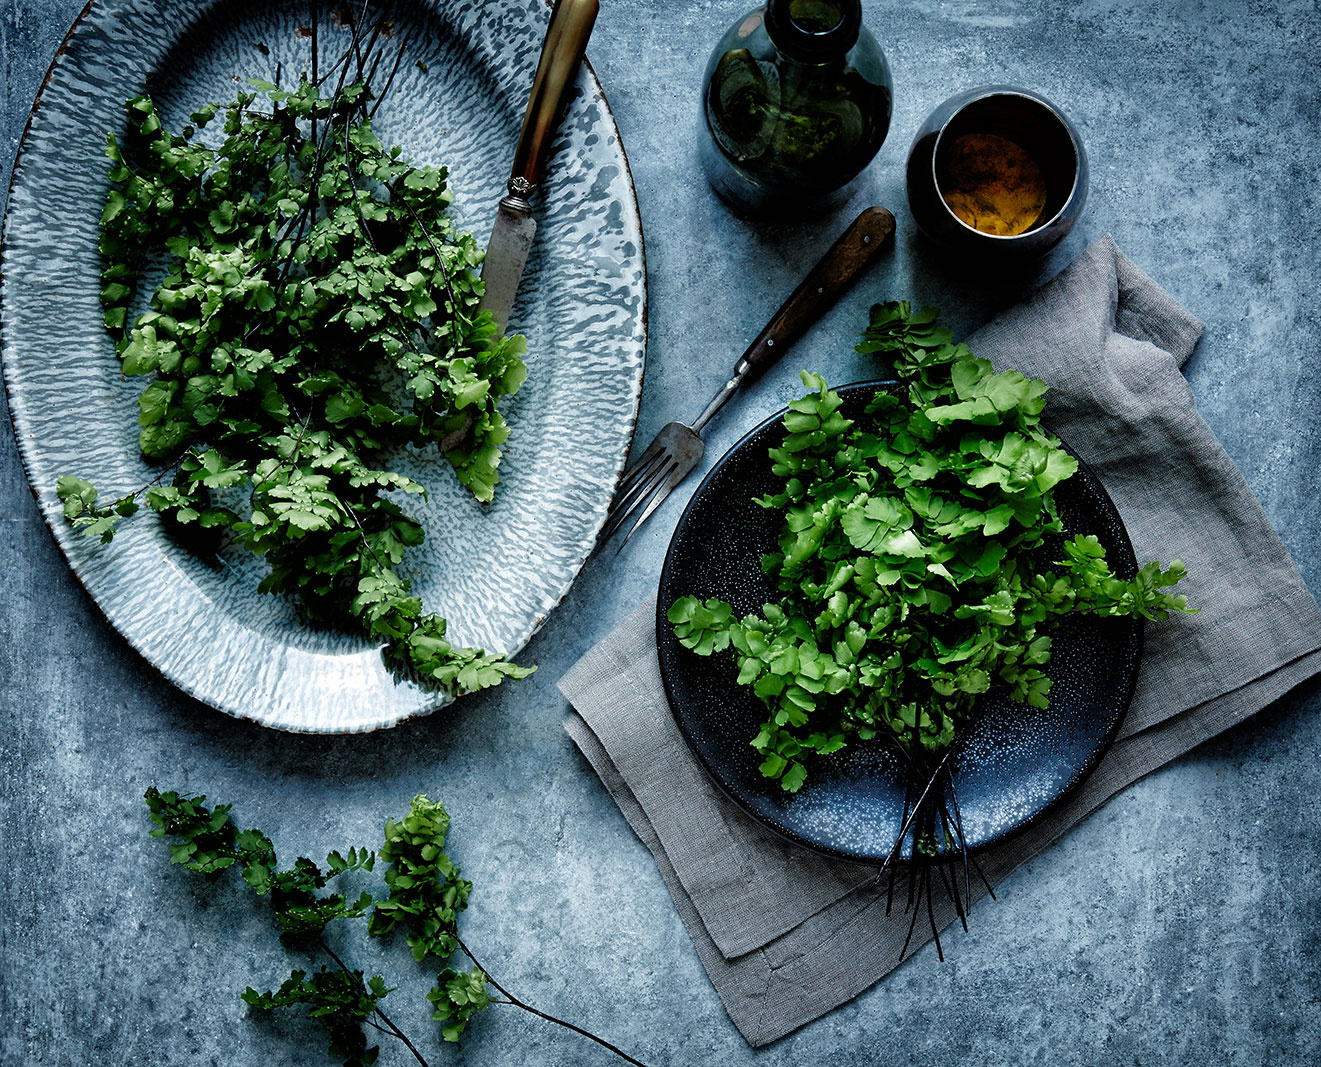 Fresh Garden Salad Greens  | Dovis Bird Agency Photography